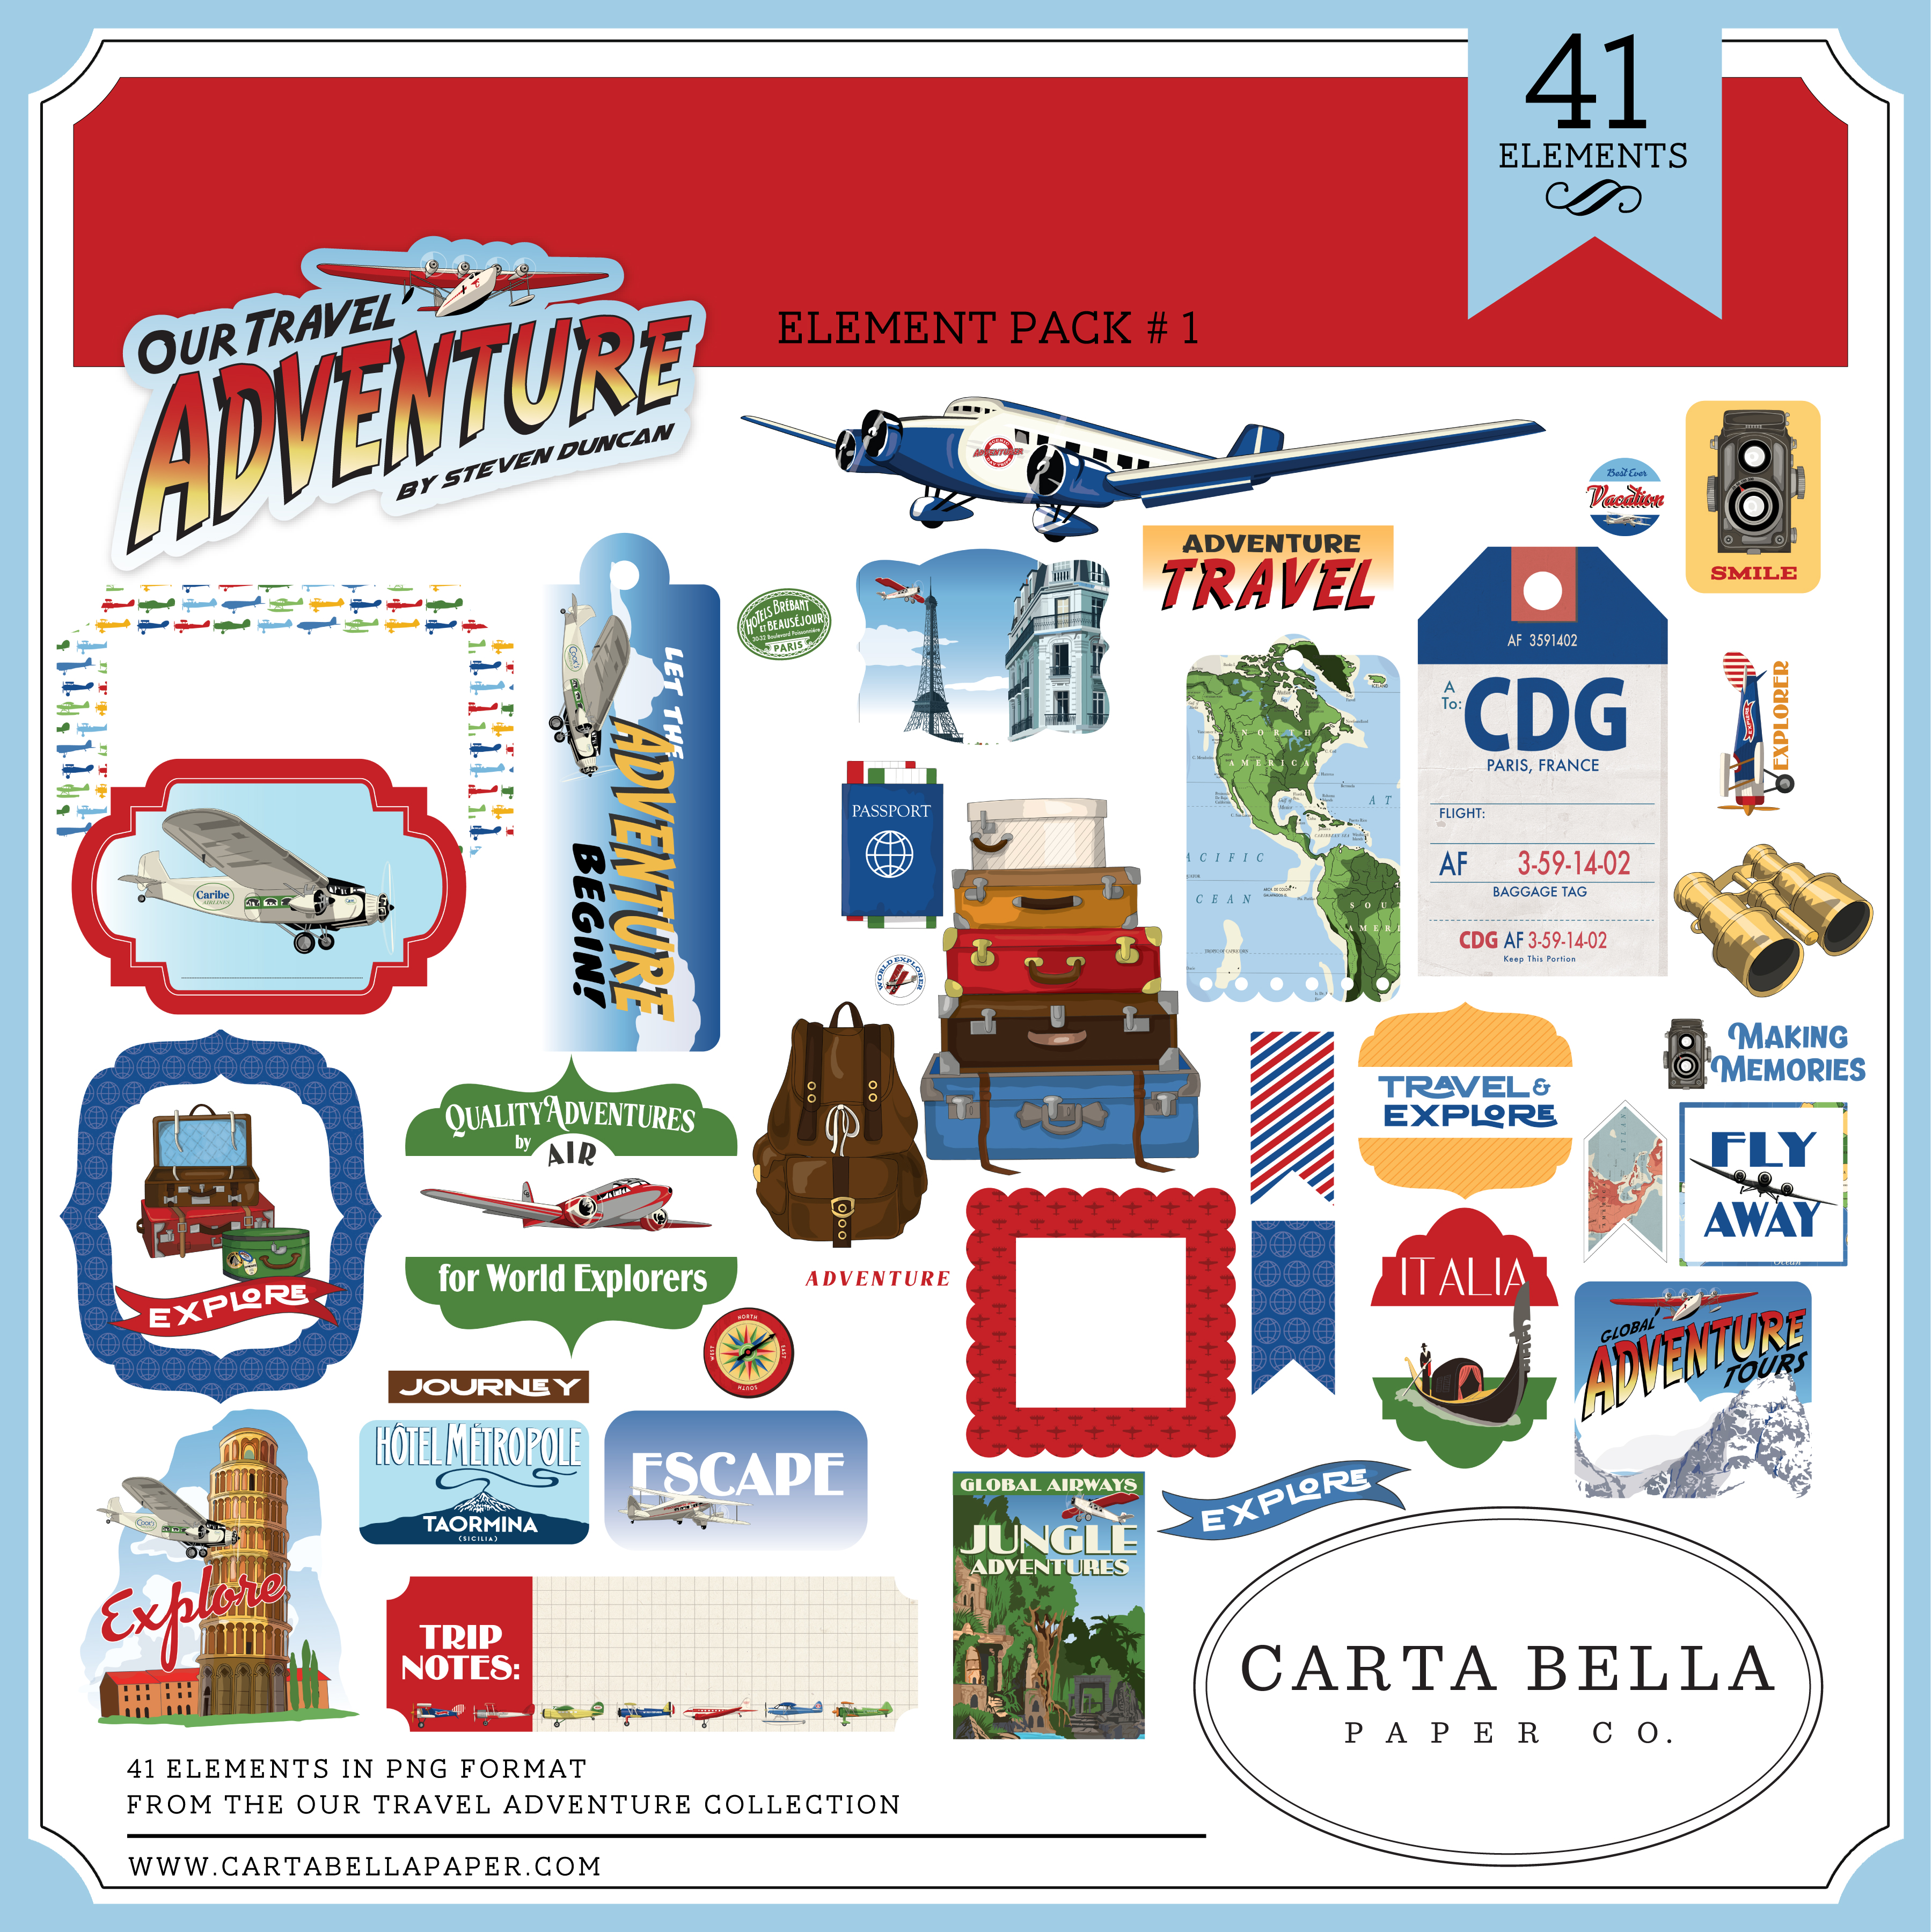 Our Travel Adventure Element Pack #1